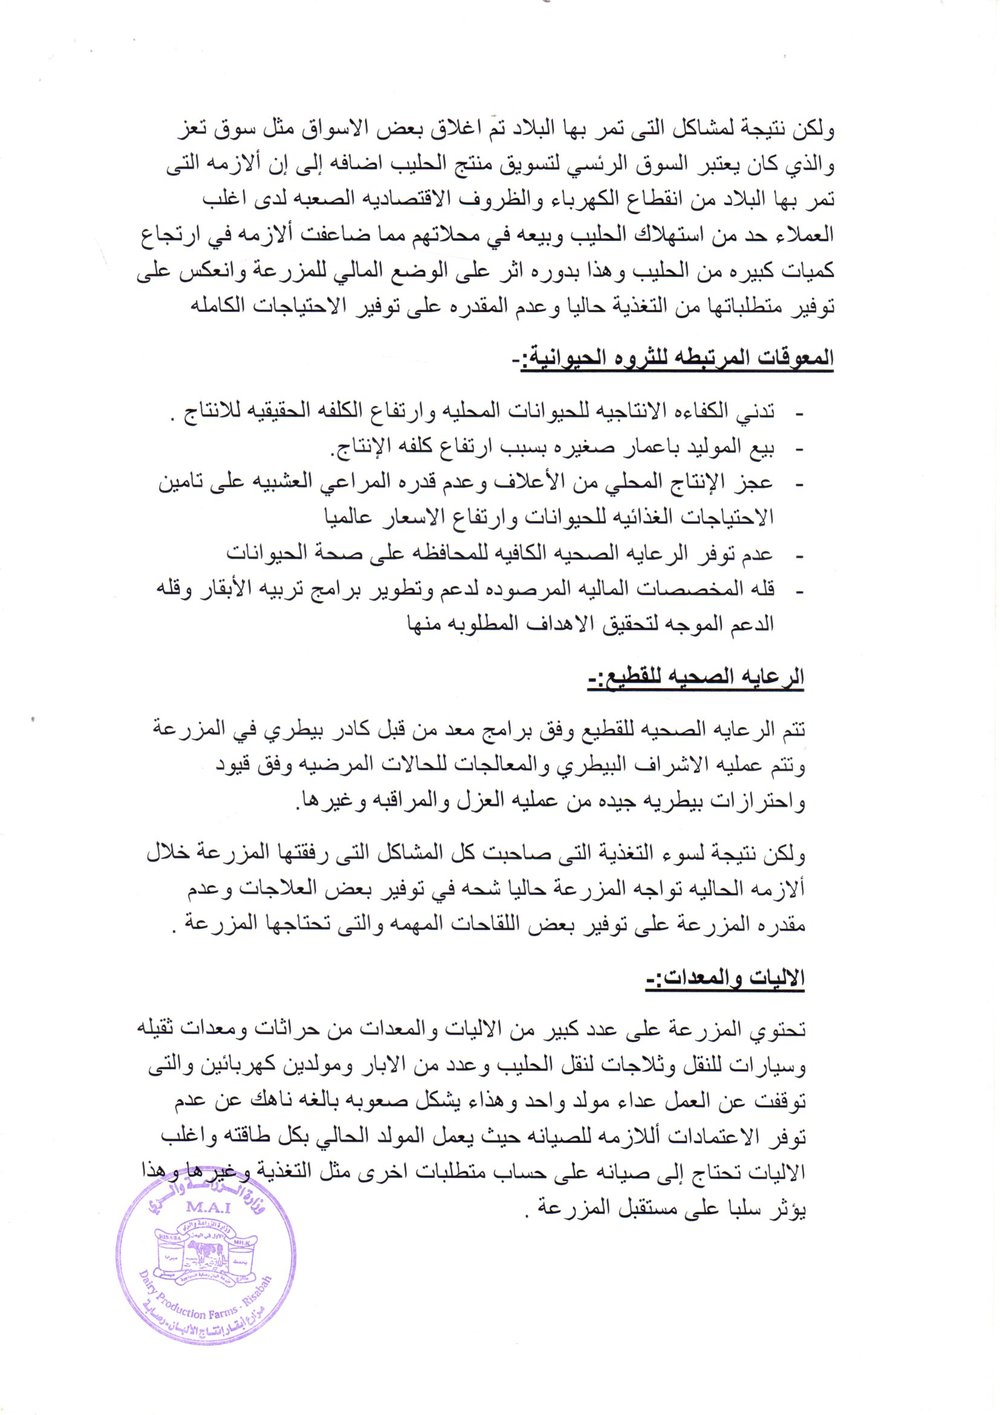 dhamar Report page 4 for Rosabah farm 3 NOV 2018 for OWAP-AR got by Hisham Al Hoot.jpg